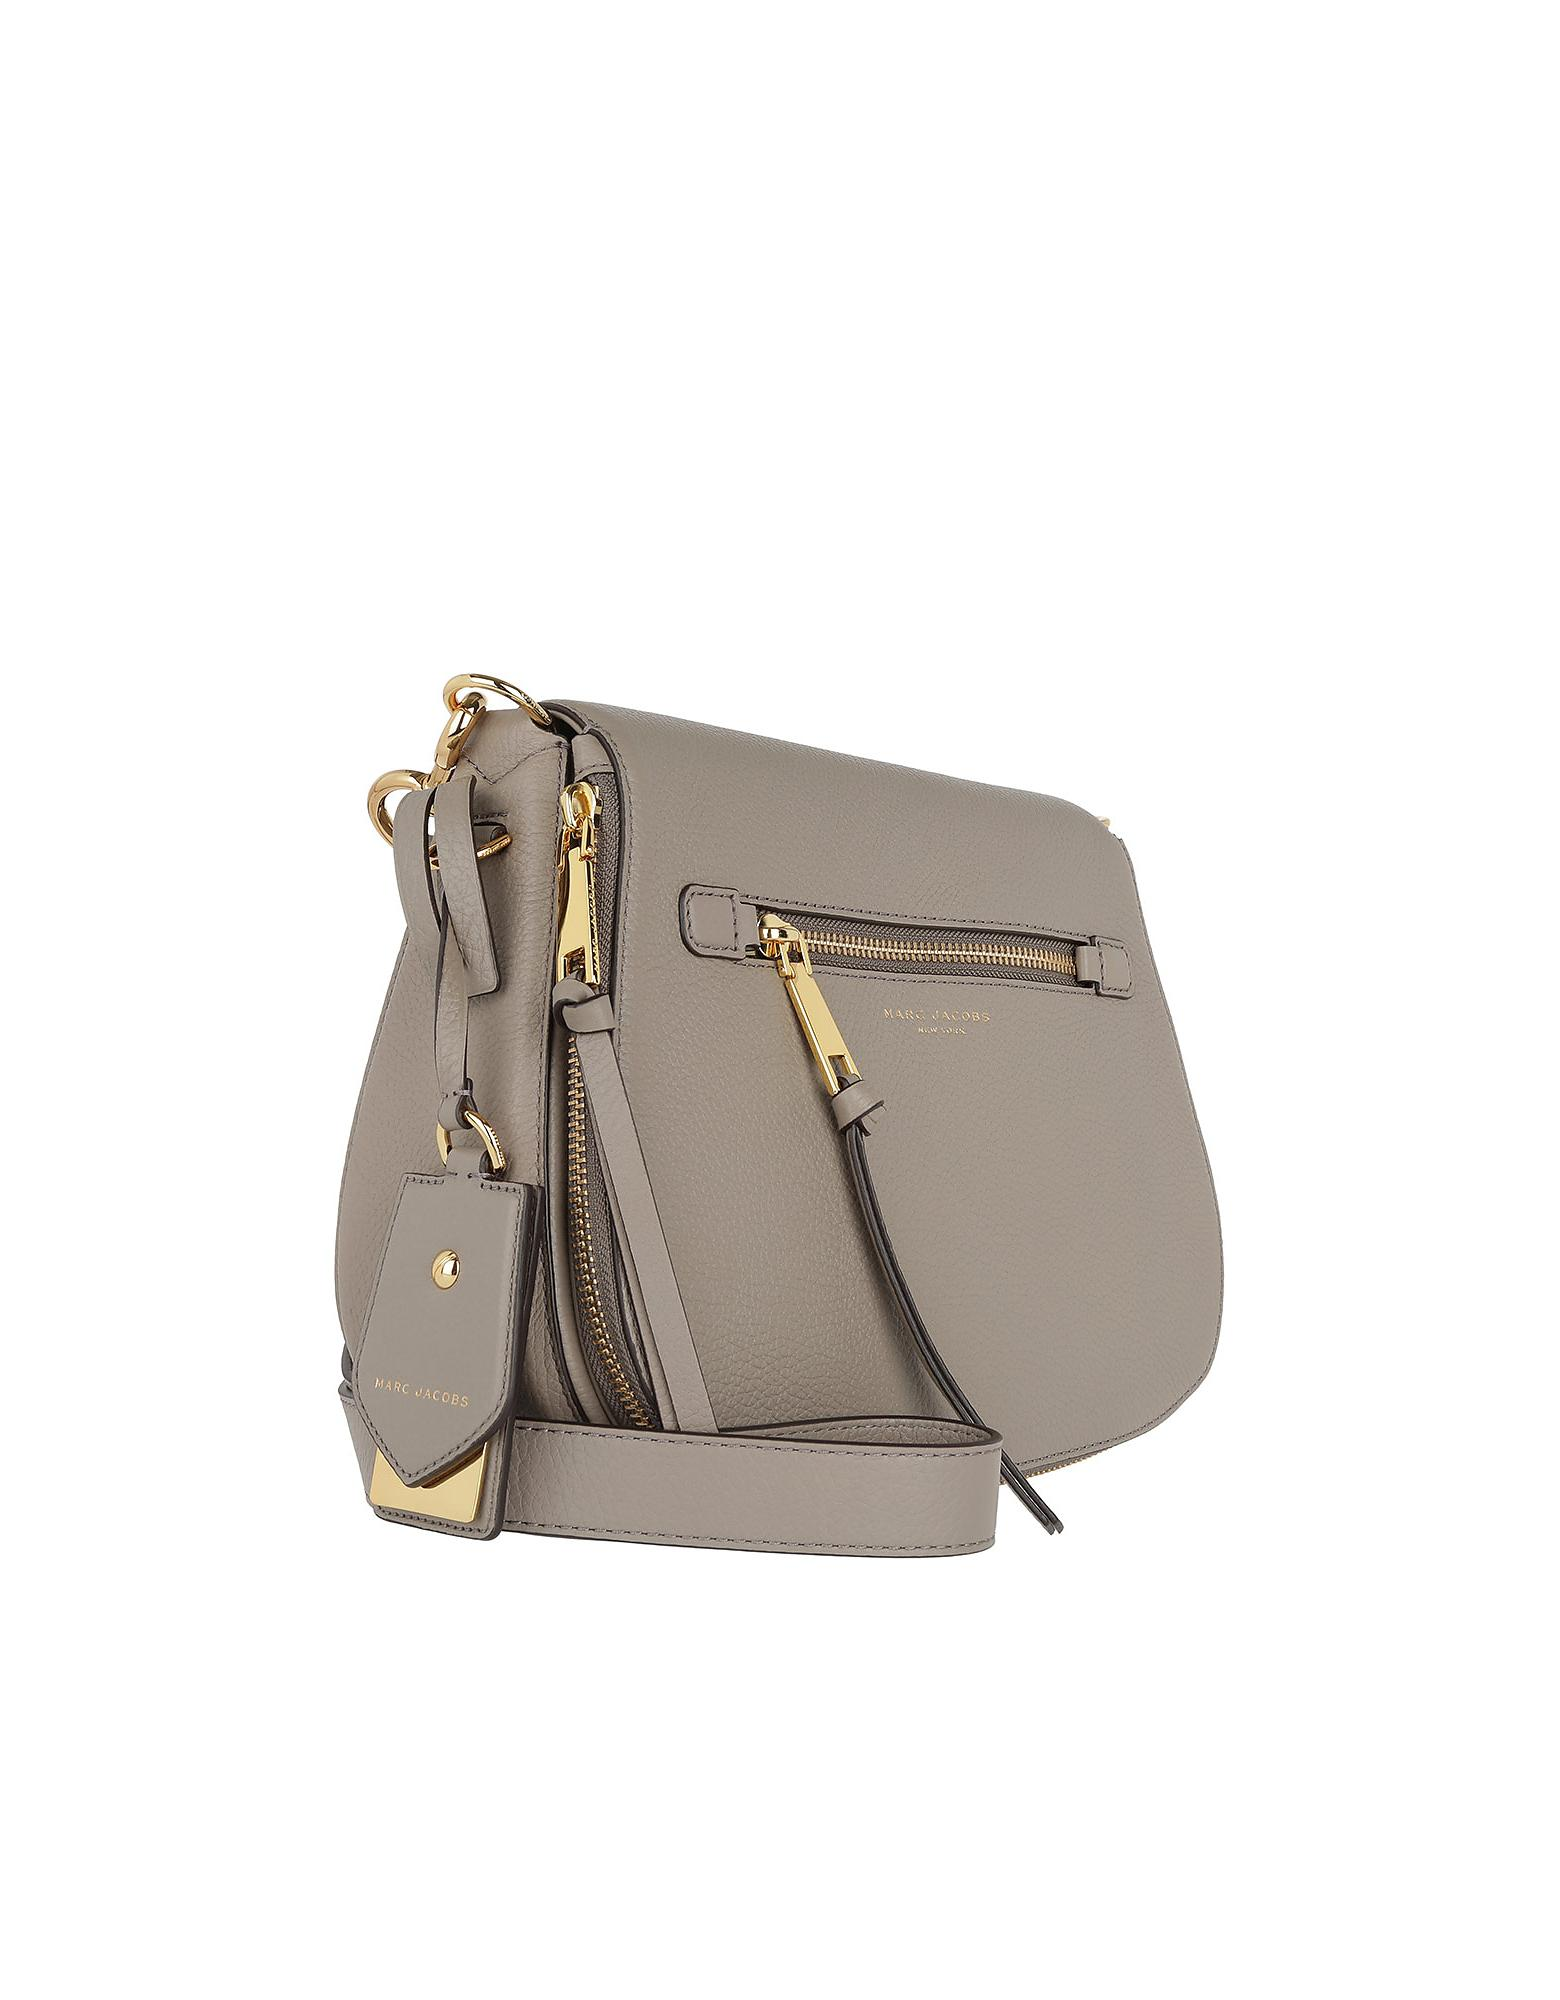 e9262cf1fd Marc Jacobs Recruit Saddle Bag Leather Mink in Gray - Lyst